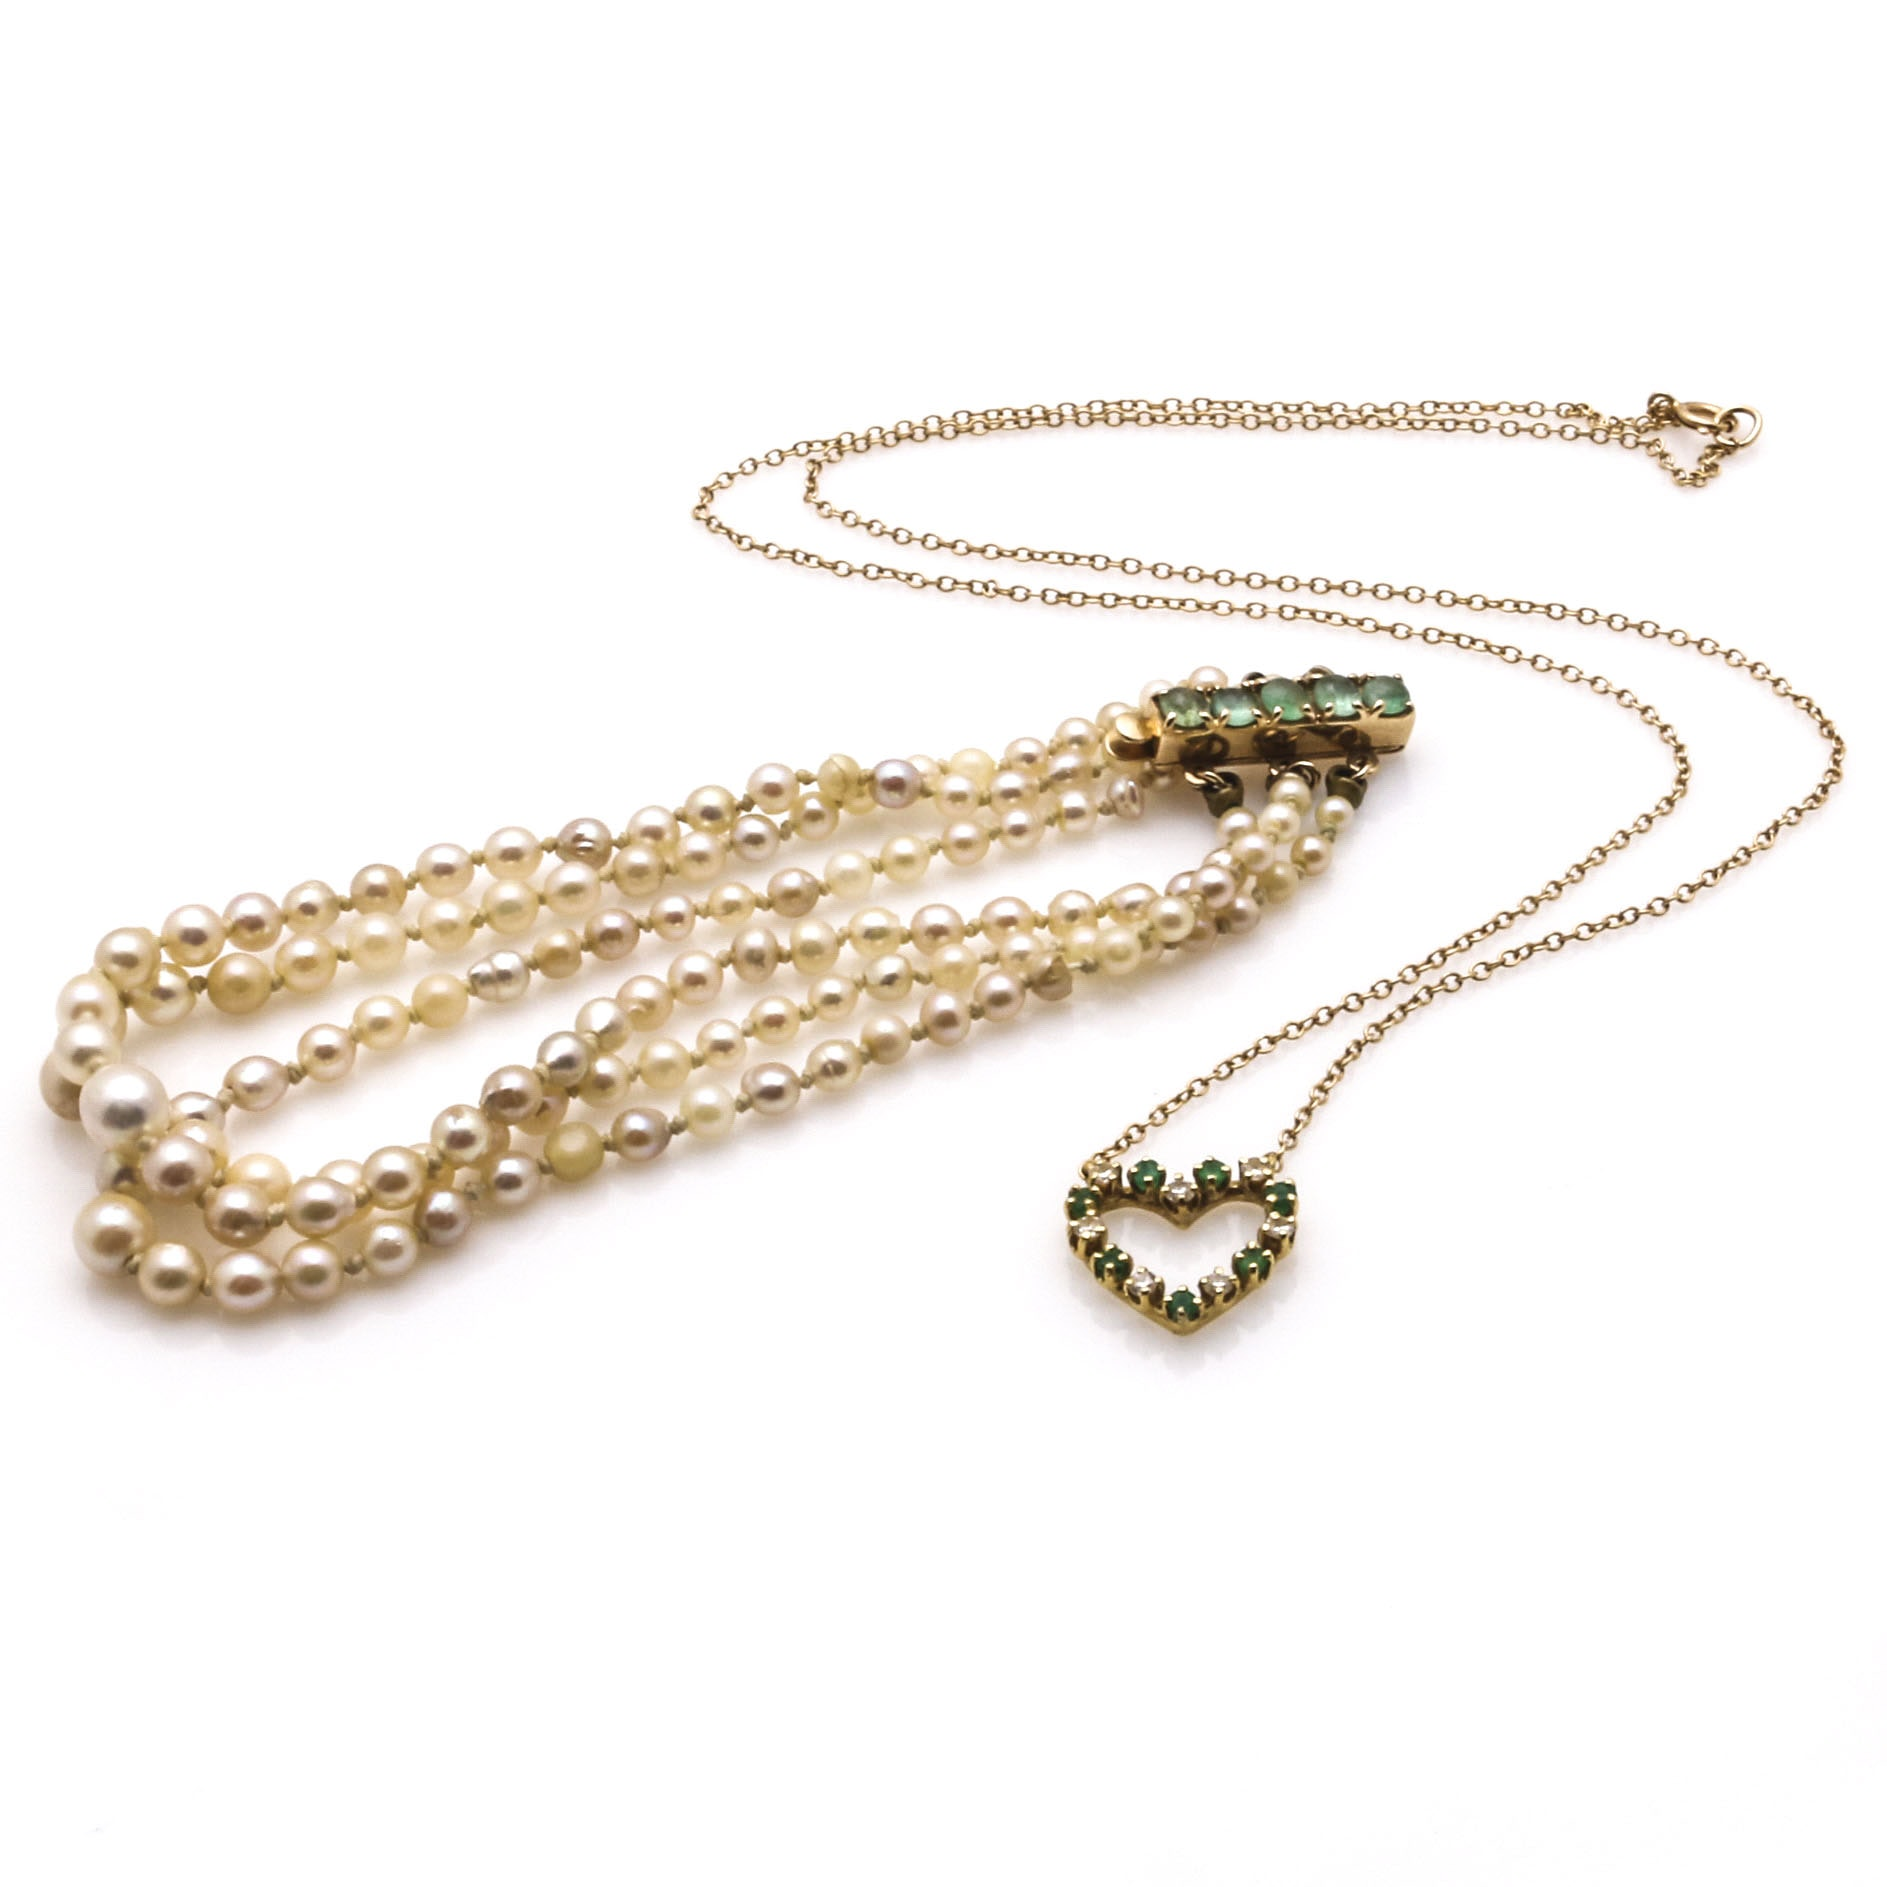 18K and 14K Gold Jewelry with Diamonds, Emeralds, and Pearls